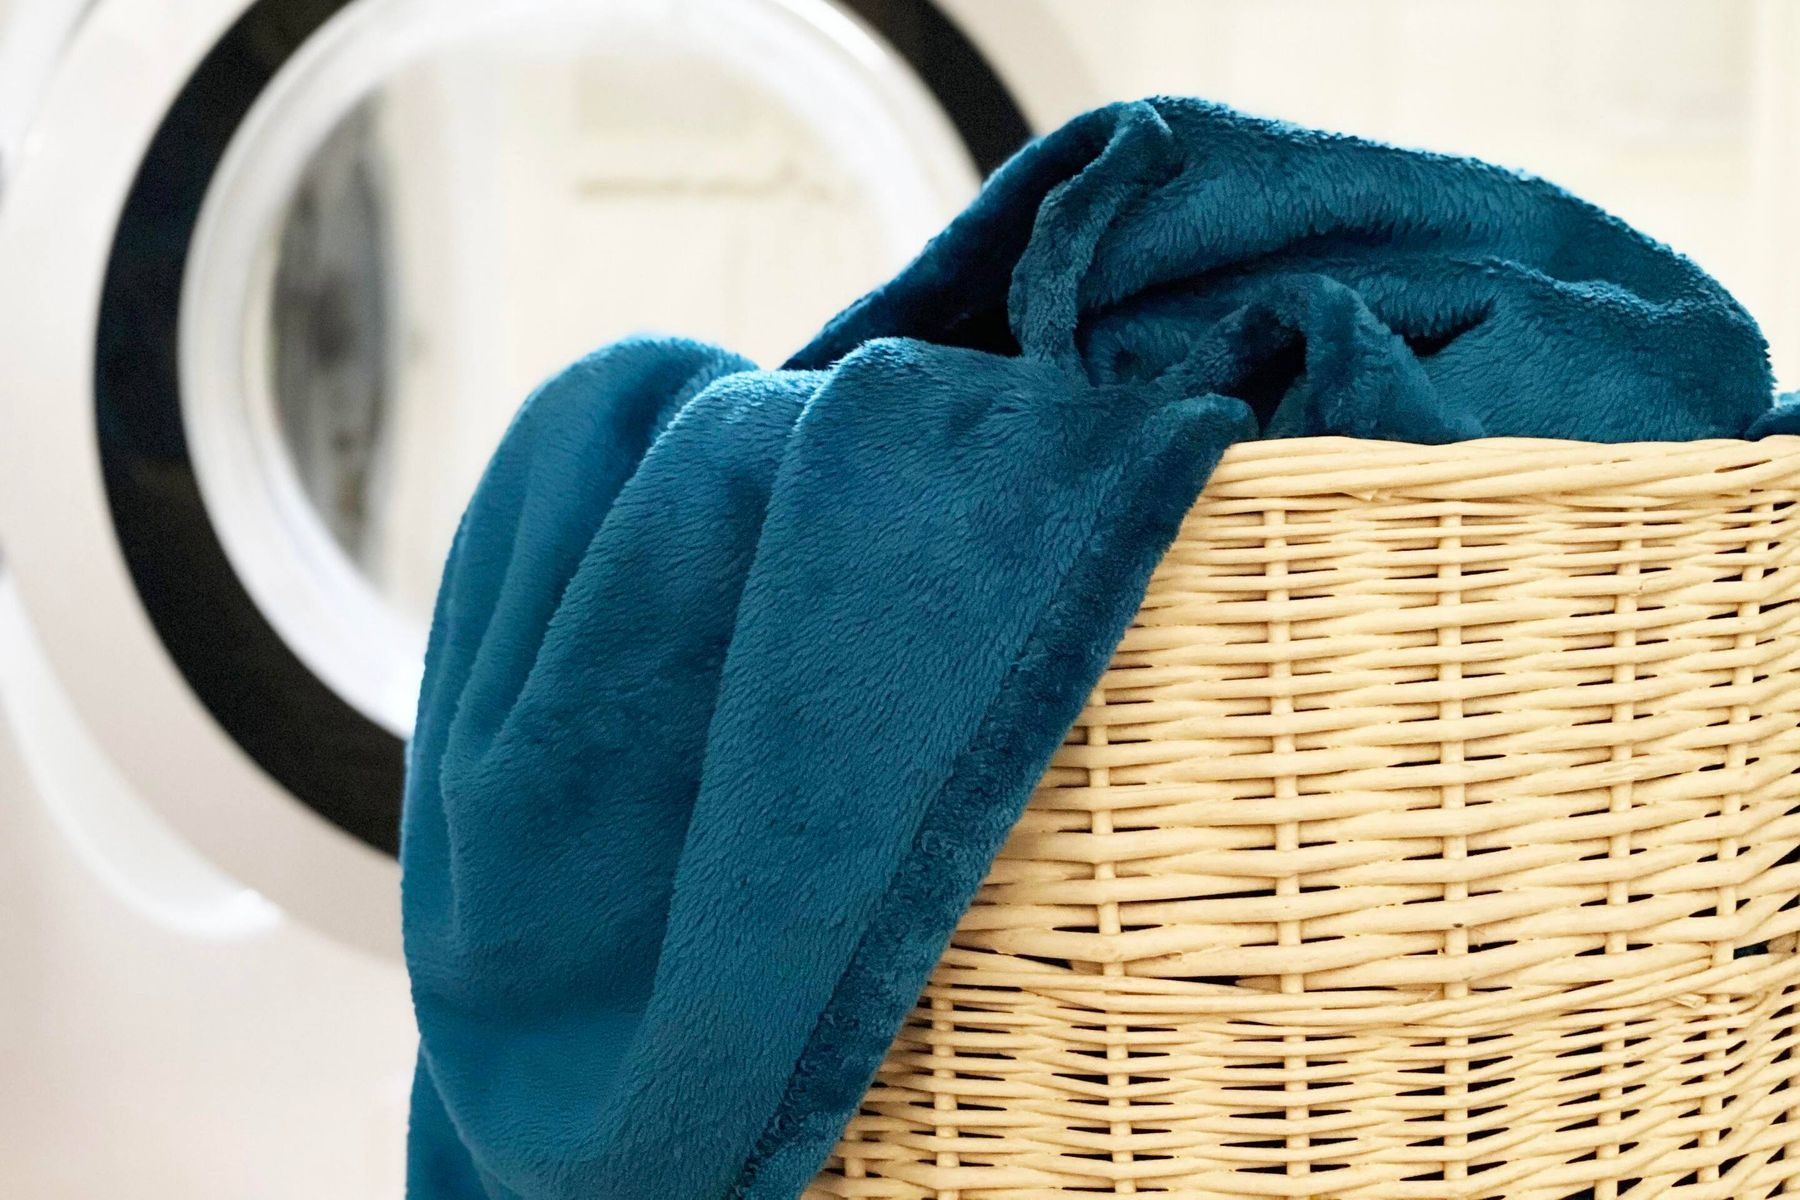 How to wash blankets